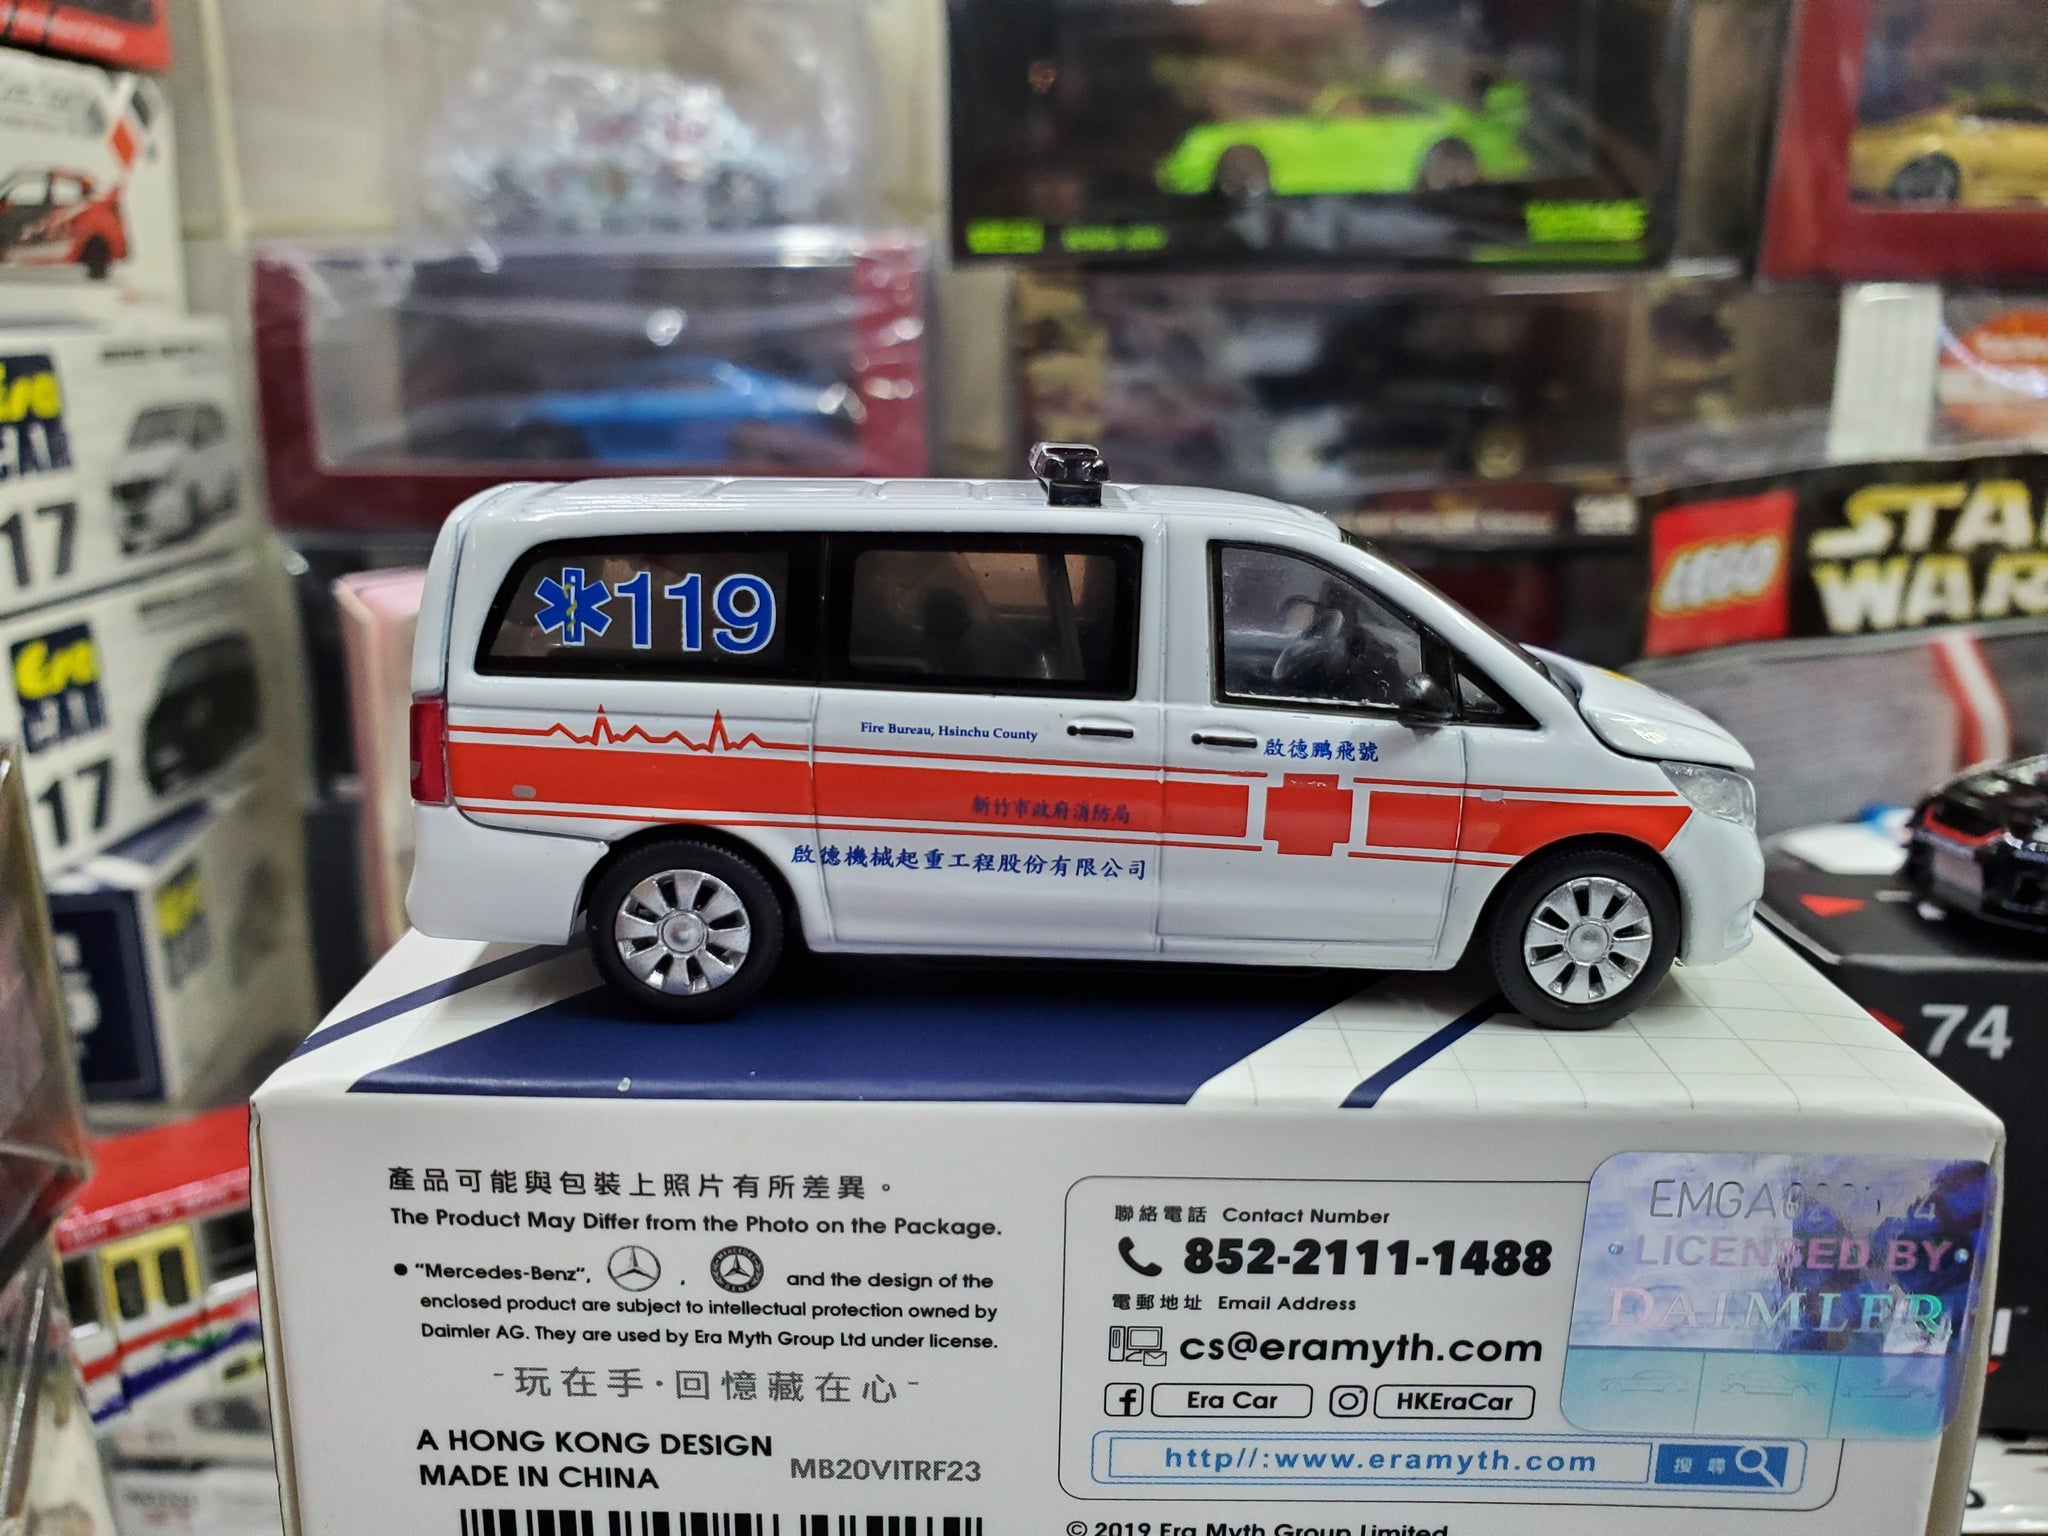 2020 mercedes vito-taiwan china Ambulance *** era car hong kong 1:64 nuevo